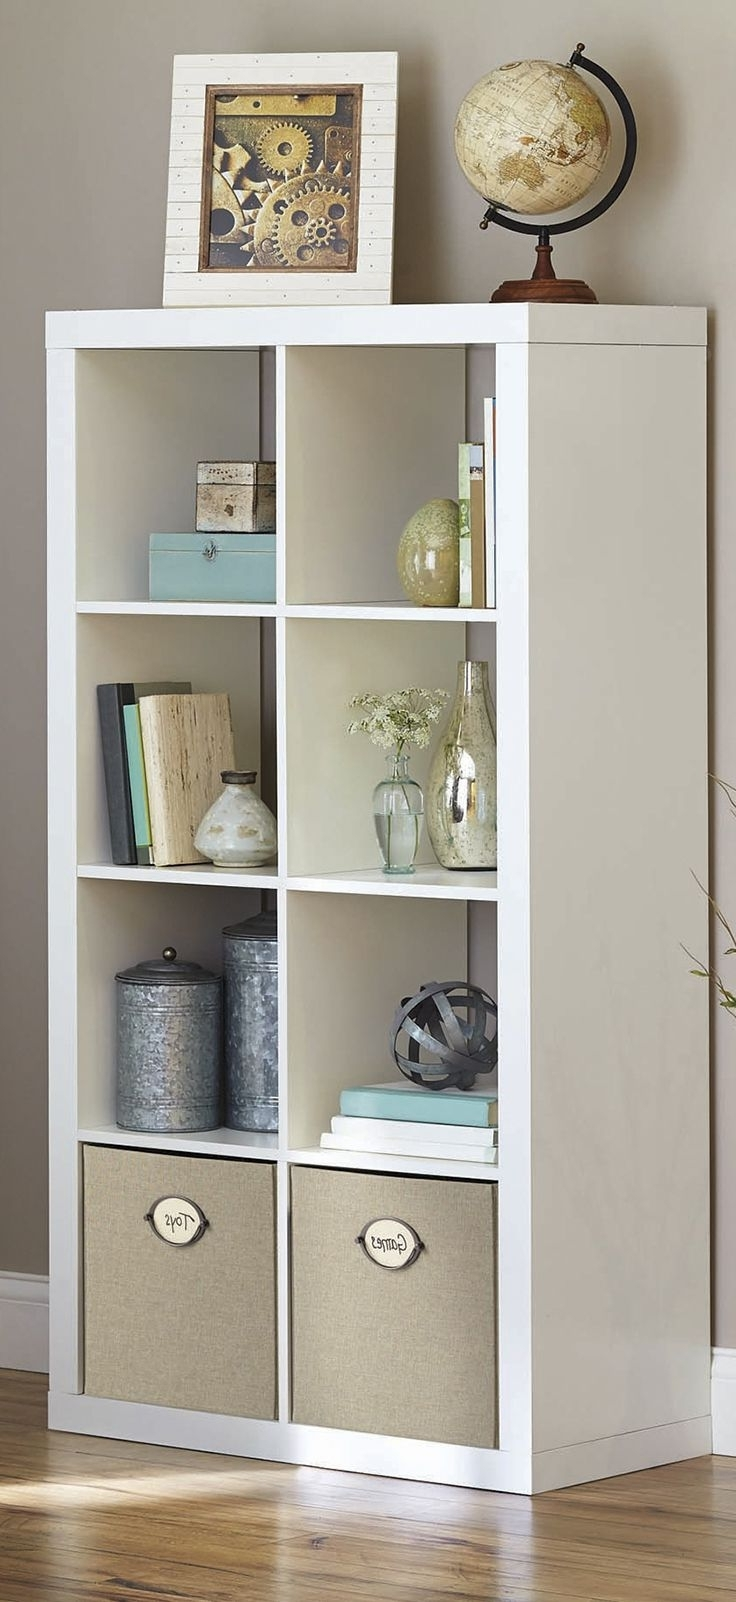 Furniture Home: Room Essentials Shelf Bookcase Beginnings Sauder Inside Well Liked Room Essentials 3 Shelf Bookcases (View 4 of 15)